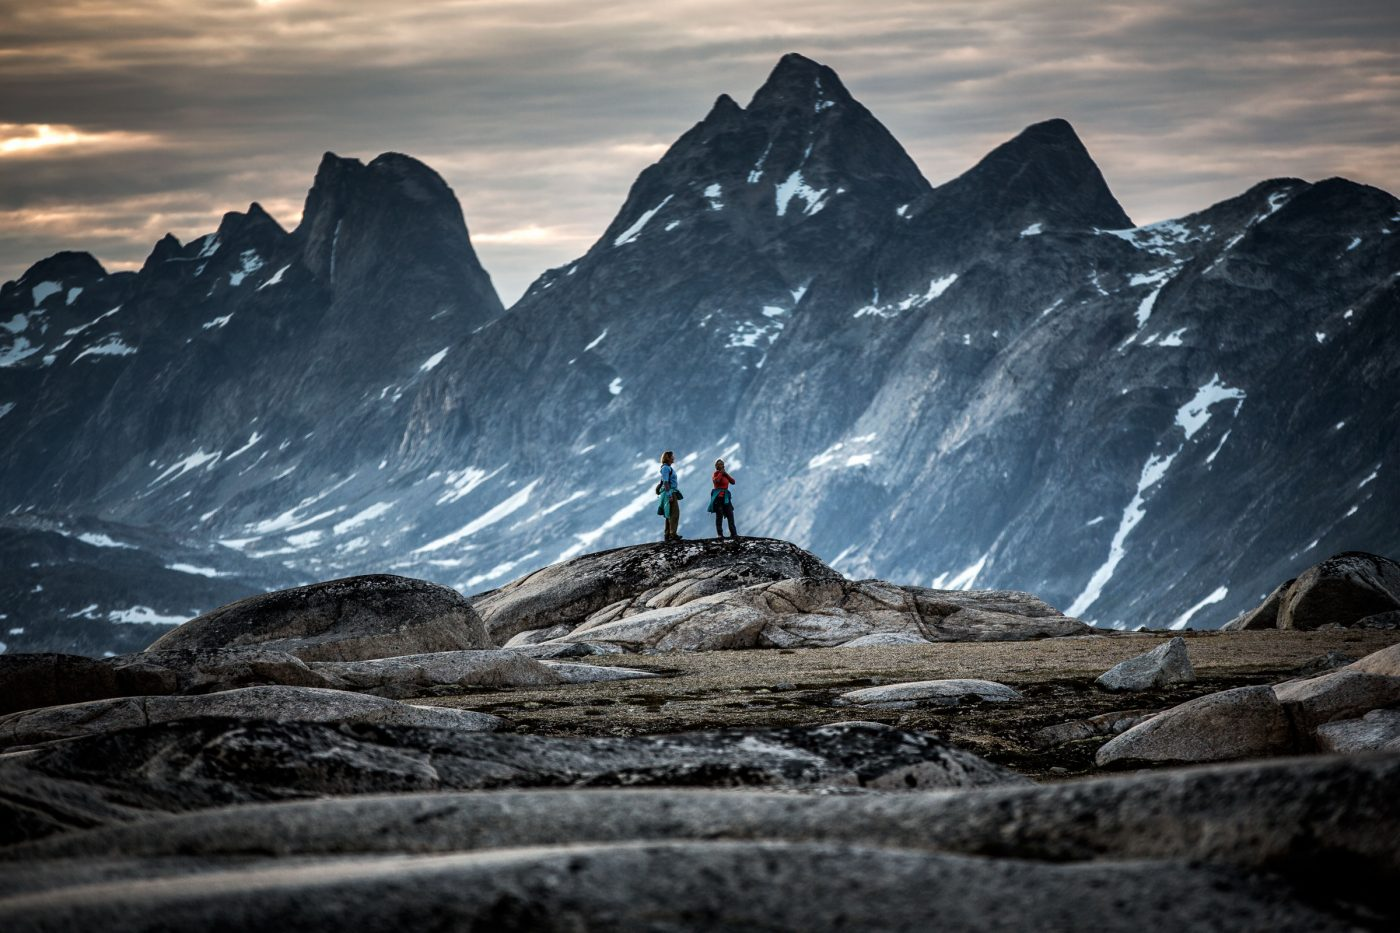 Two hikers at the top of a field with a mountain in the background. Photo by Mads Pihl